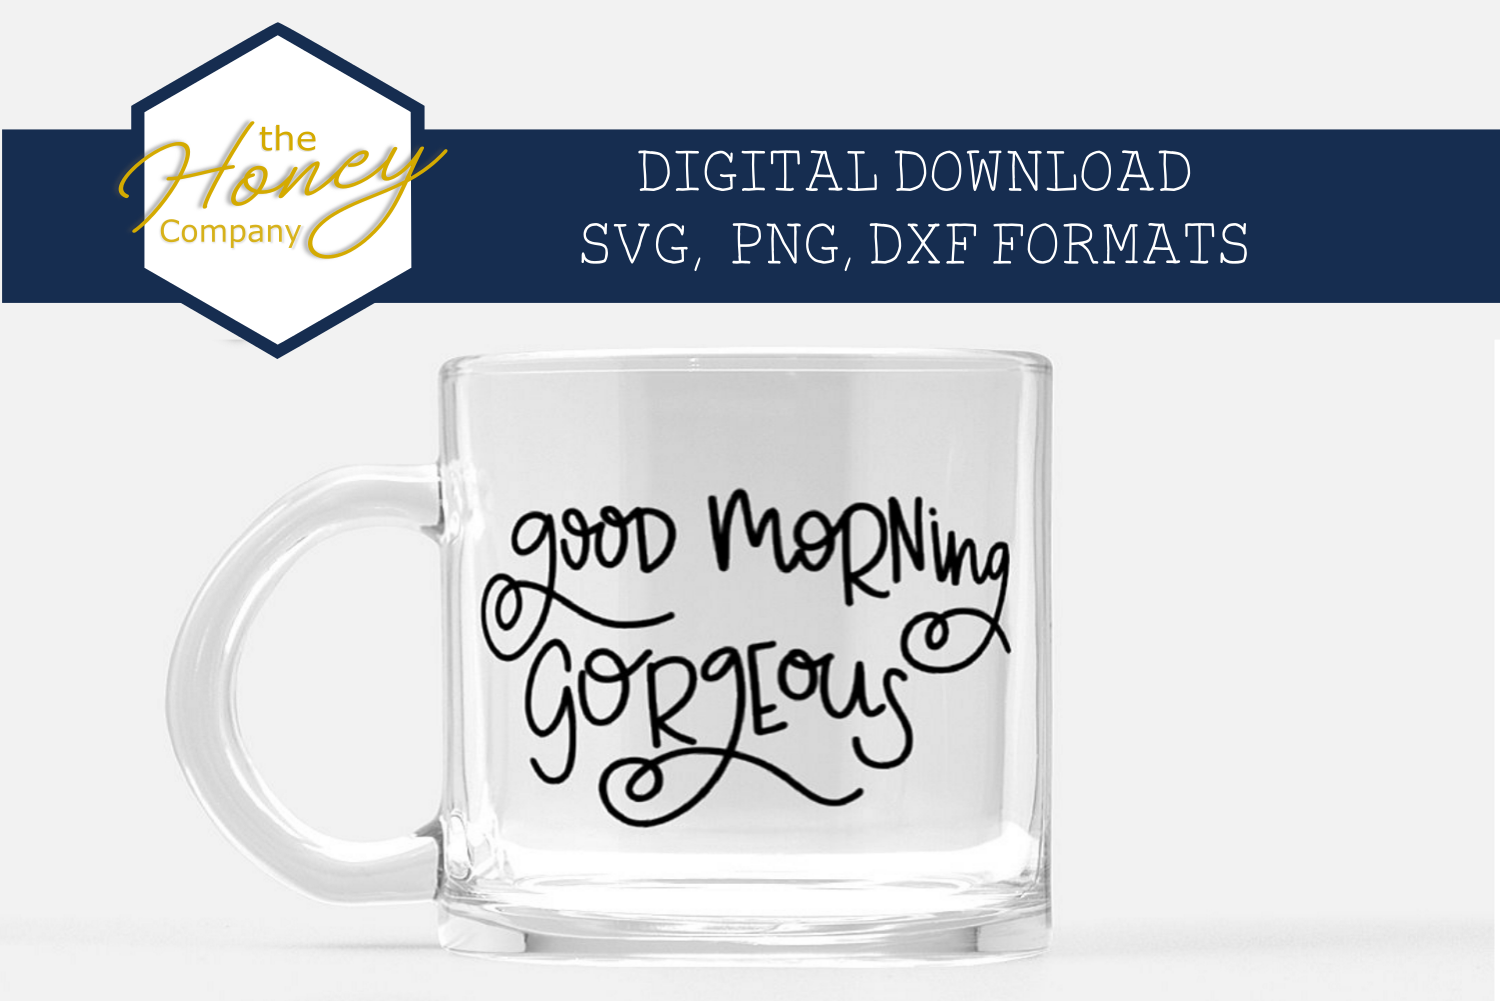 Good Morning Gorgeous SVG PNG DXF Hand Lettered Valentine example image 1